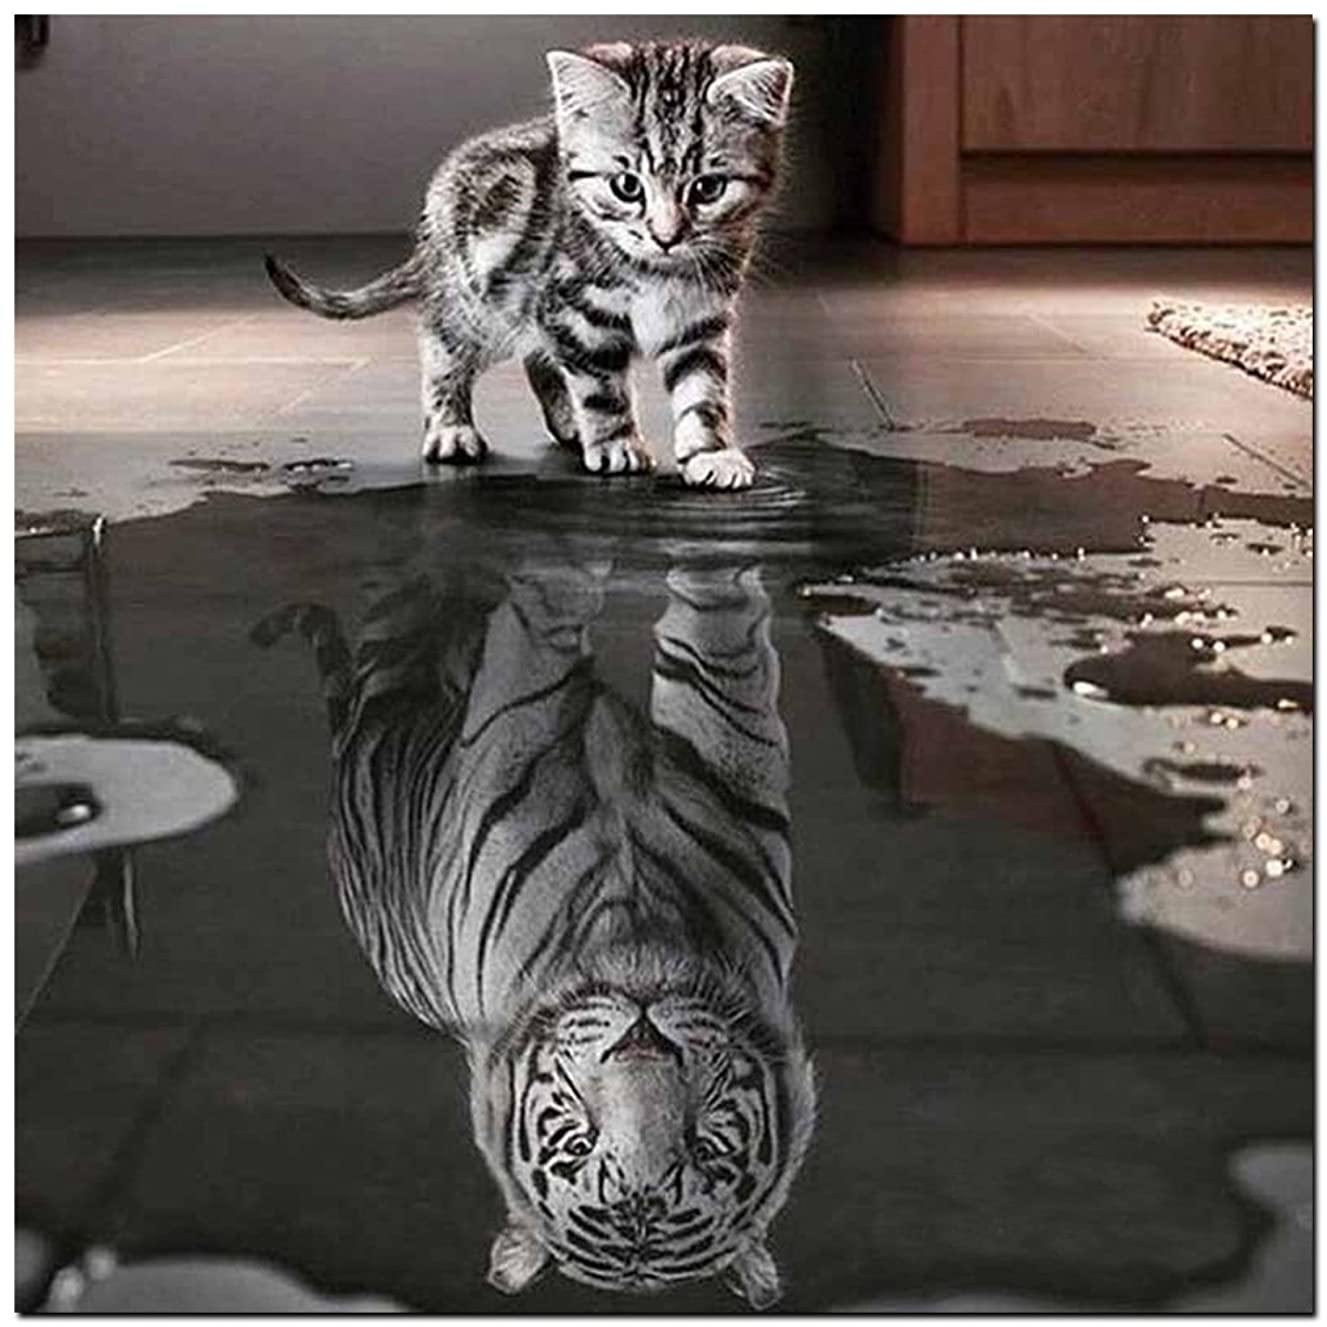 21secret 5D Diamond Cats Tiger Reflection Animal Handmade Square Diy Painting Cross Stitch Home Decor Embroidery Kit